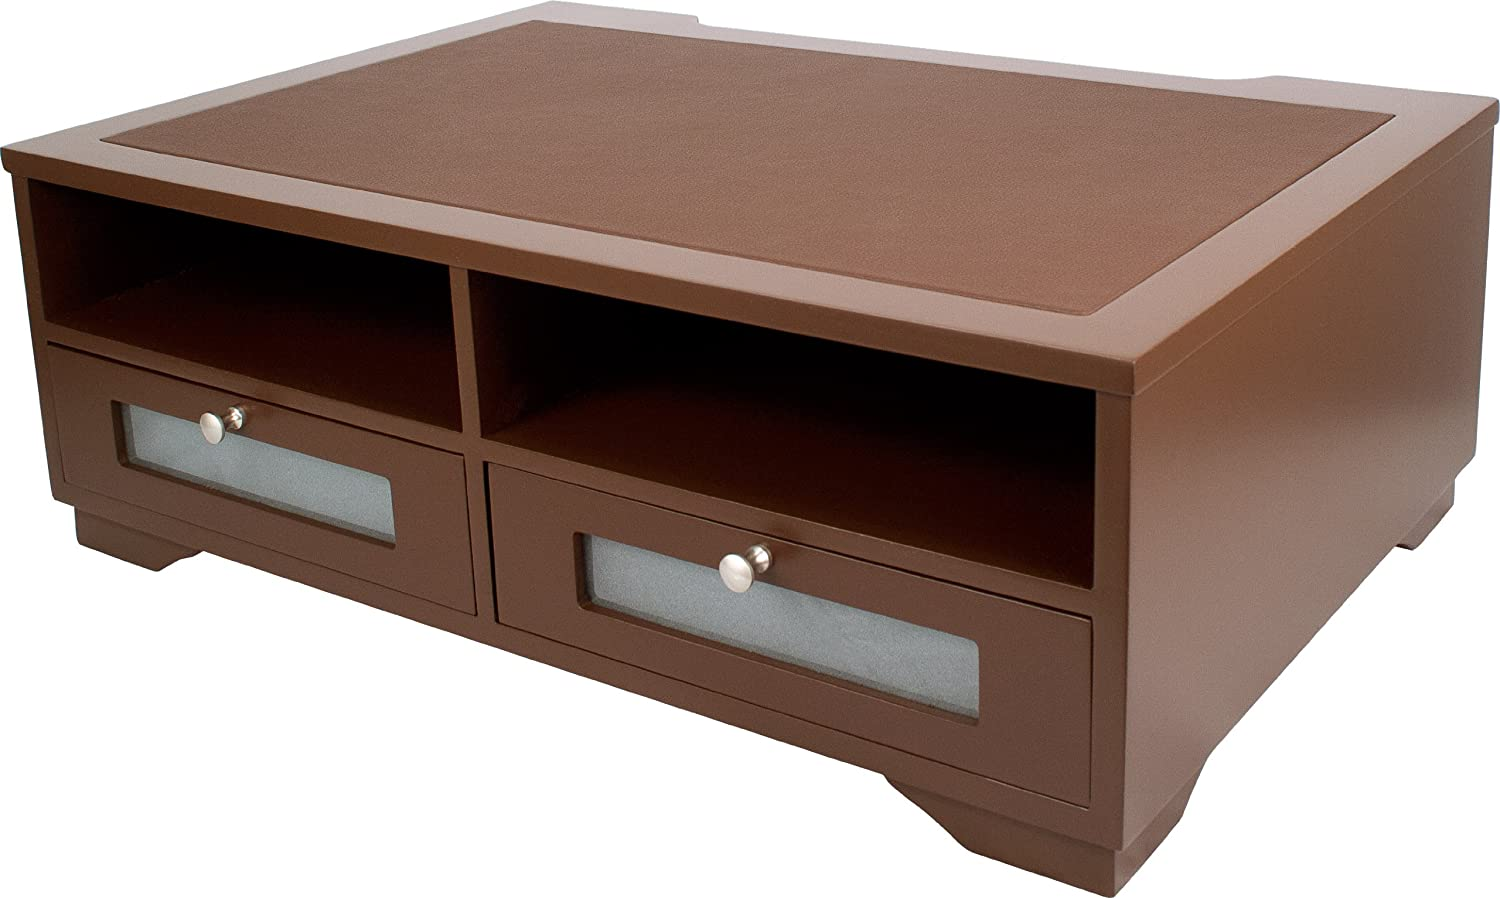 Wooden Printer Tables ~ Wood printer stand office desk shelves drawer table paper